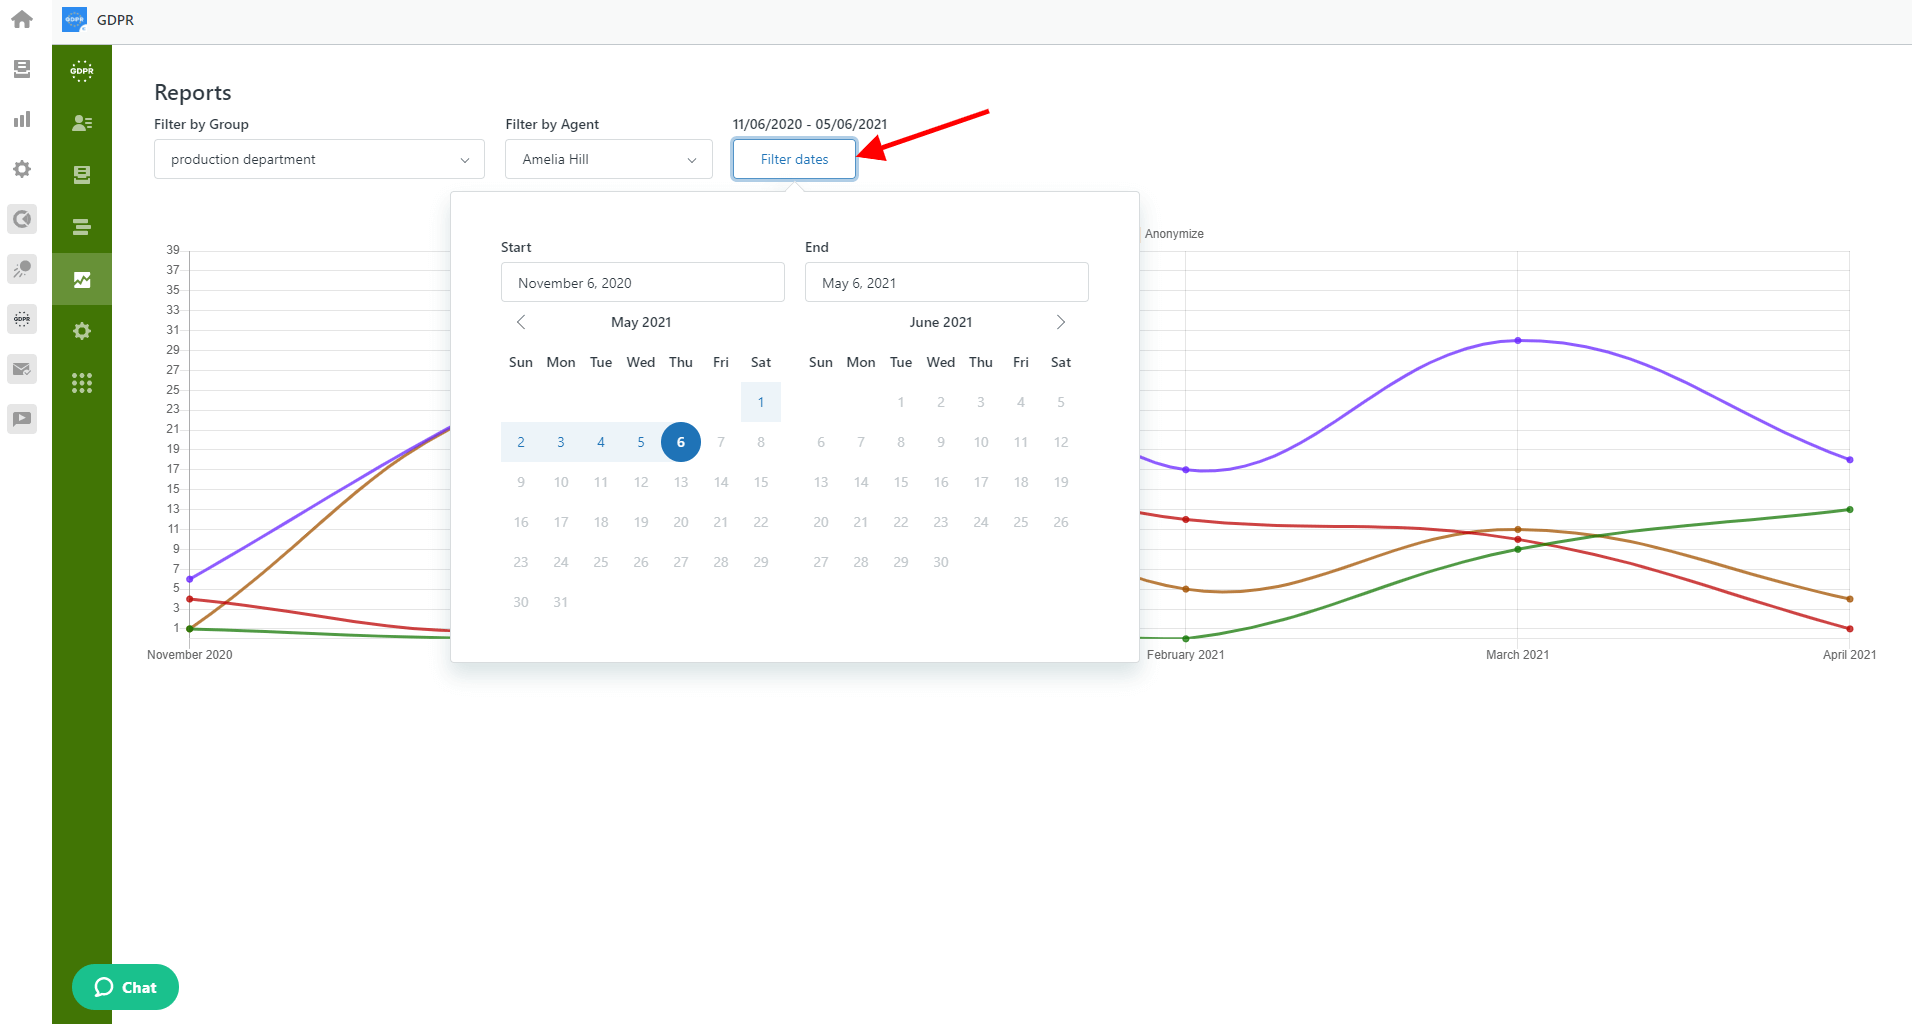 Reports Page In GDPR Compliance Filter Dates